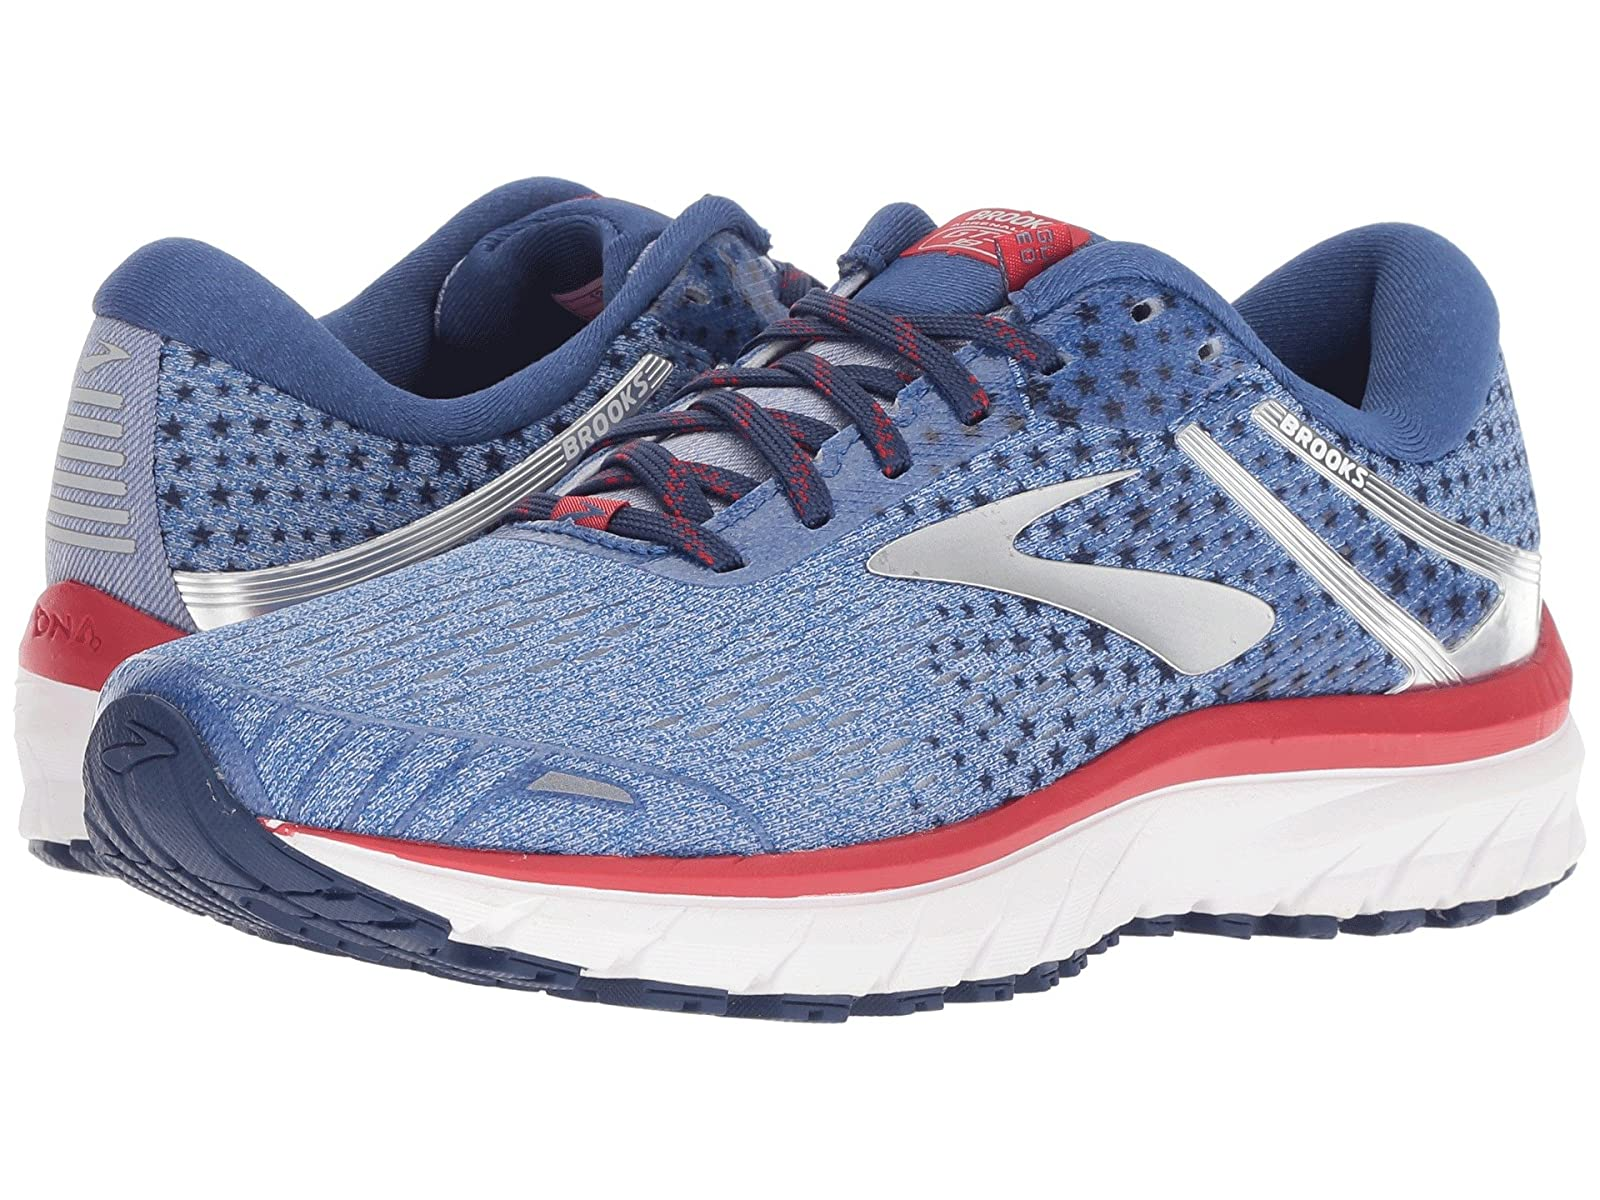 Brooks Adrenaline GTS 18Atmospheric grades have affordable shoes